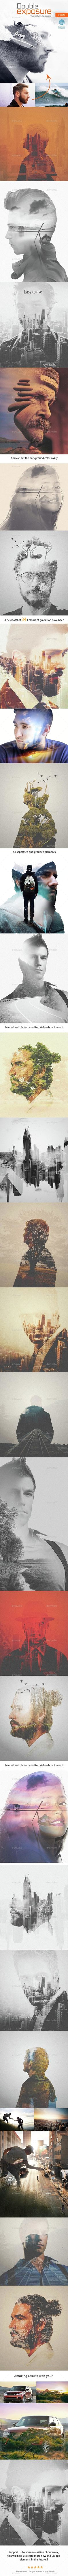 Double Exposure Photoshop PSD Template • Download ➝ https://graphicriver.net/item/double-exposure-photoshop-template-/11484640?ref=pxcr